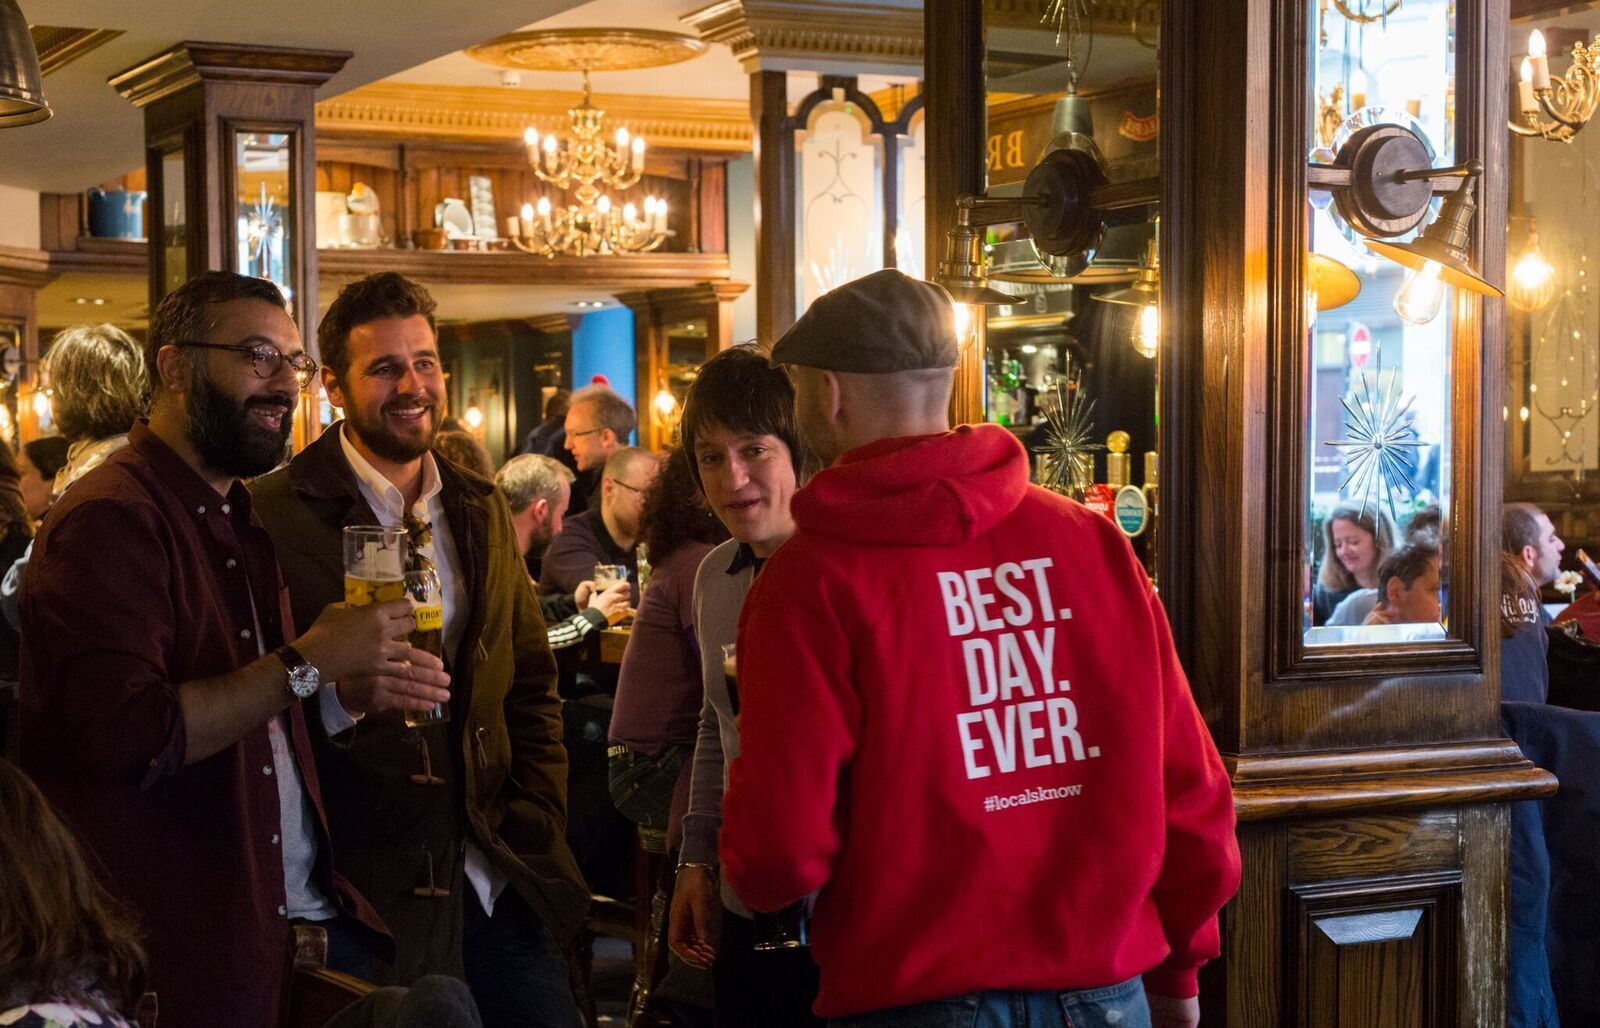 Tour guide with group at a pub in London